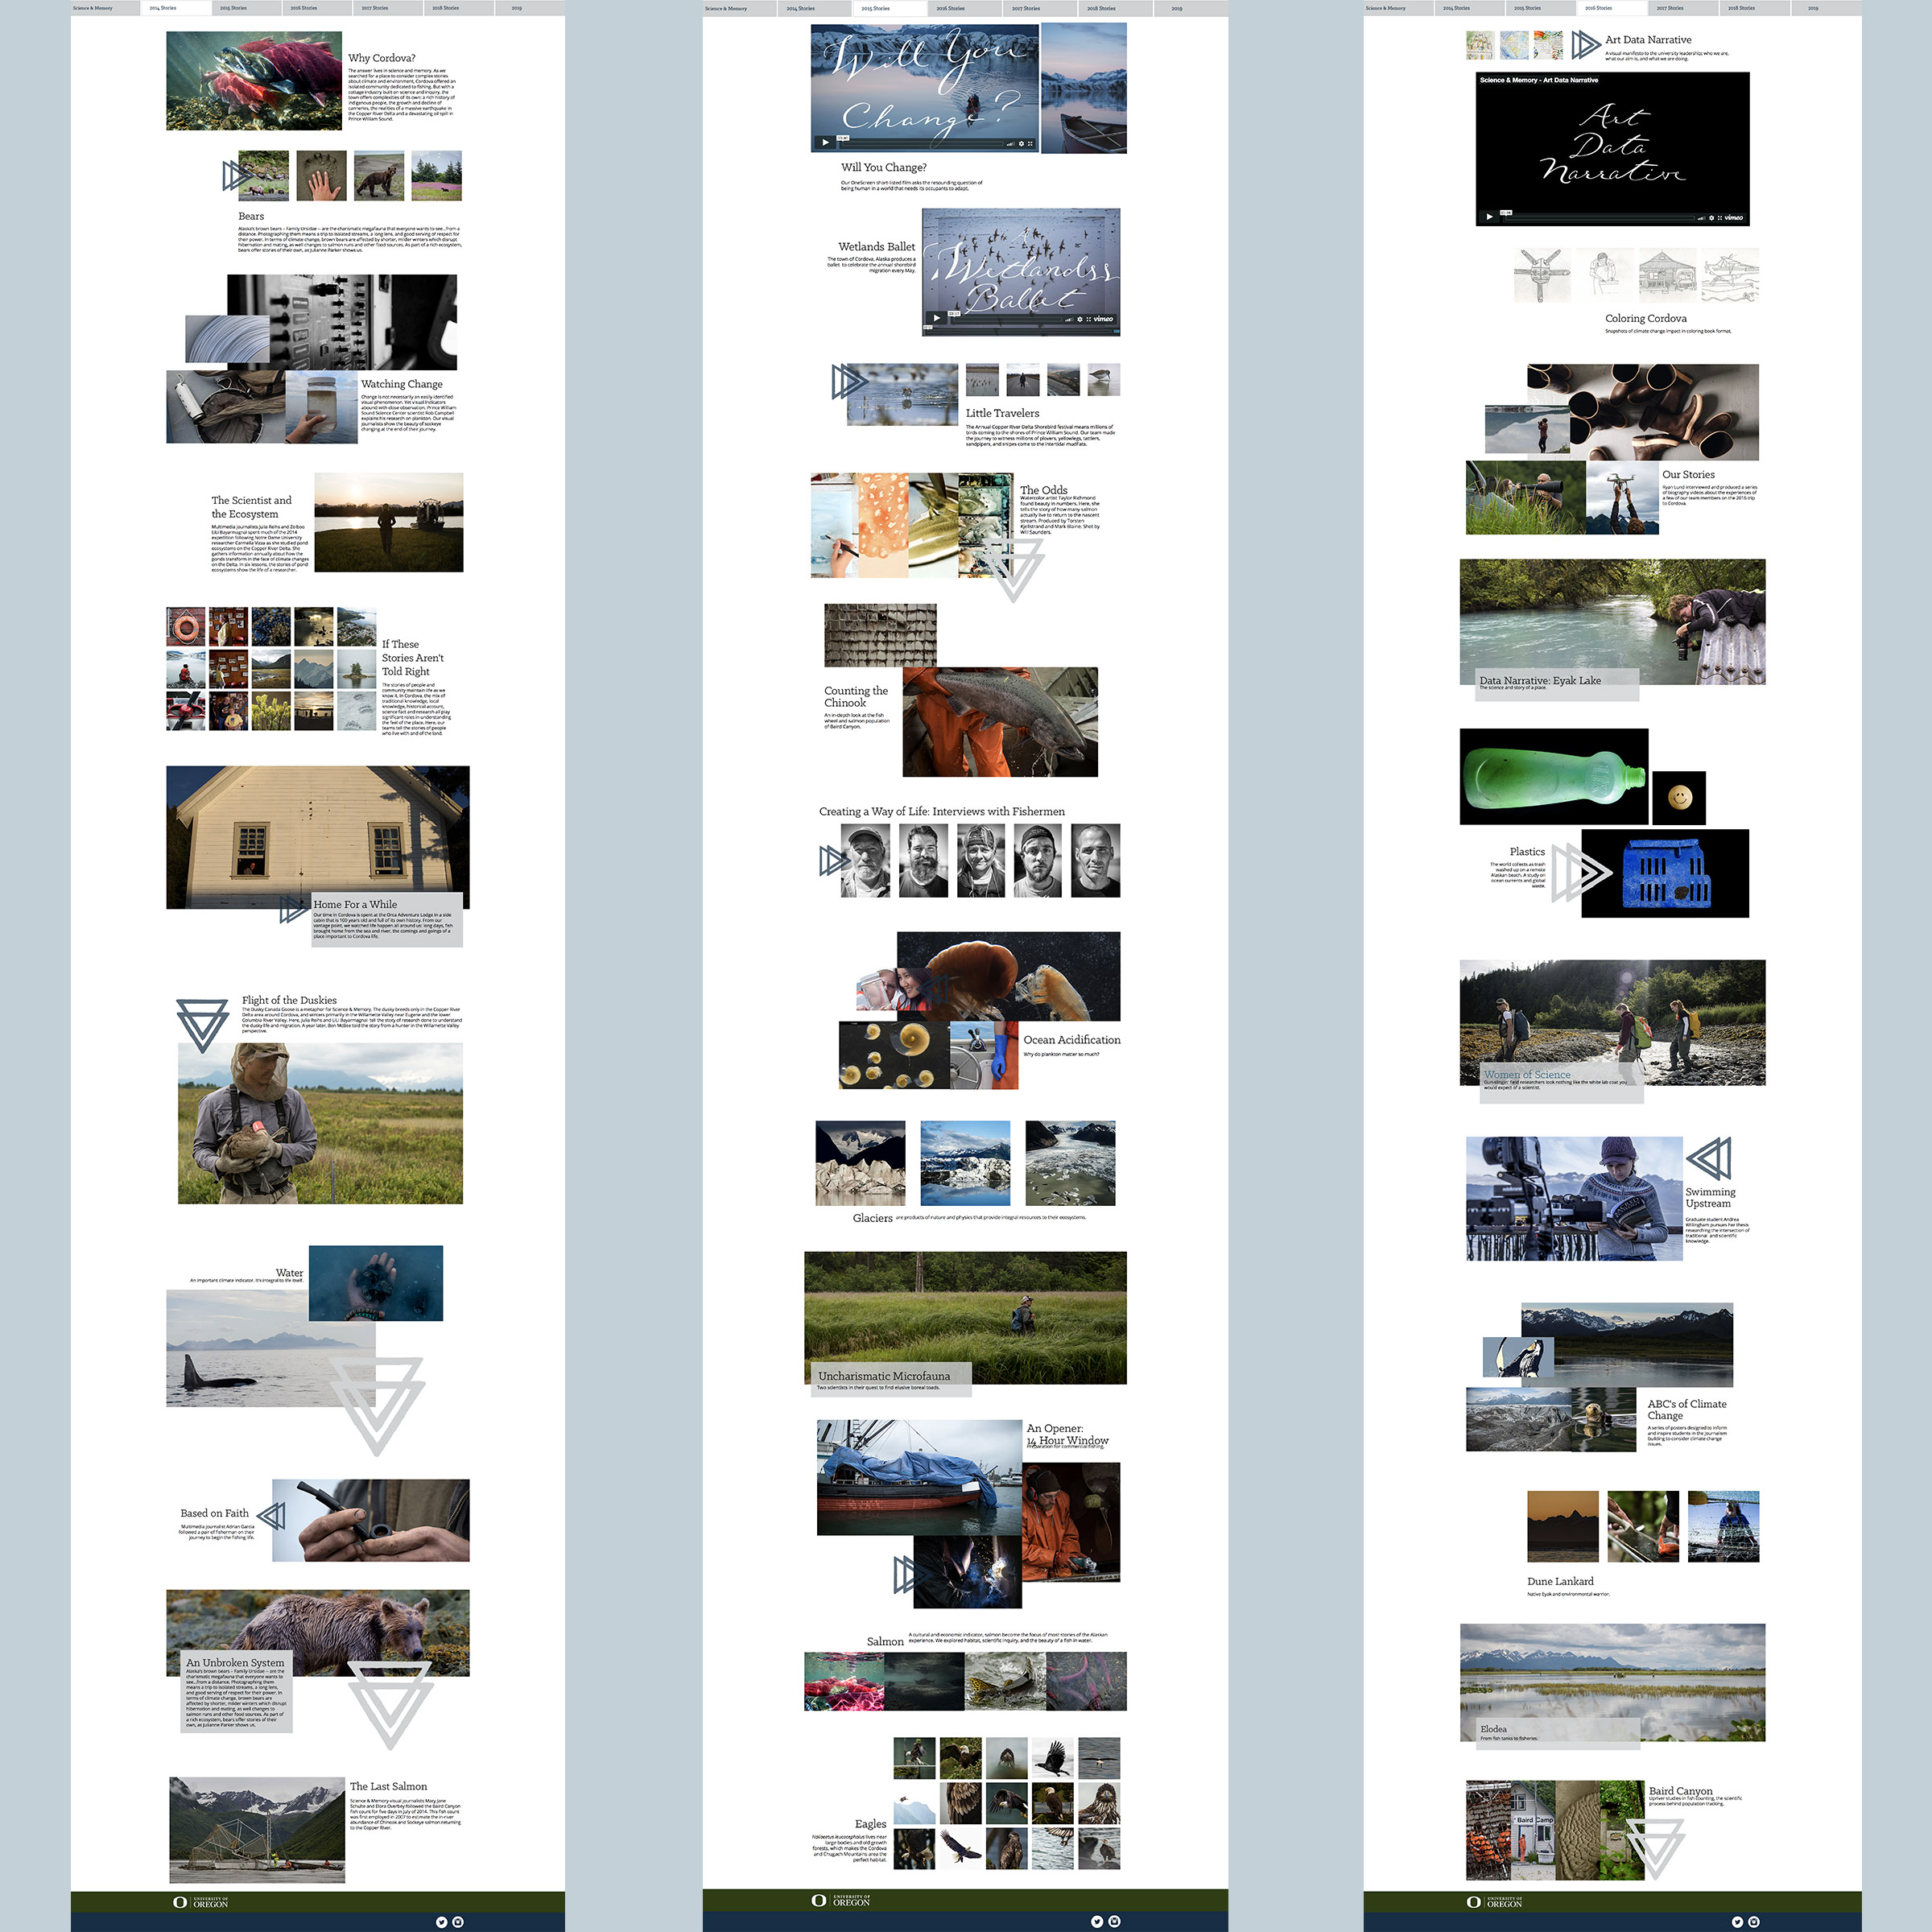 """Overview of the """"Expedition"""" Pages I designed for 2014, 2015, and 2016. Each section heading links to a story page, which I also designed. 56 web pages total."""